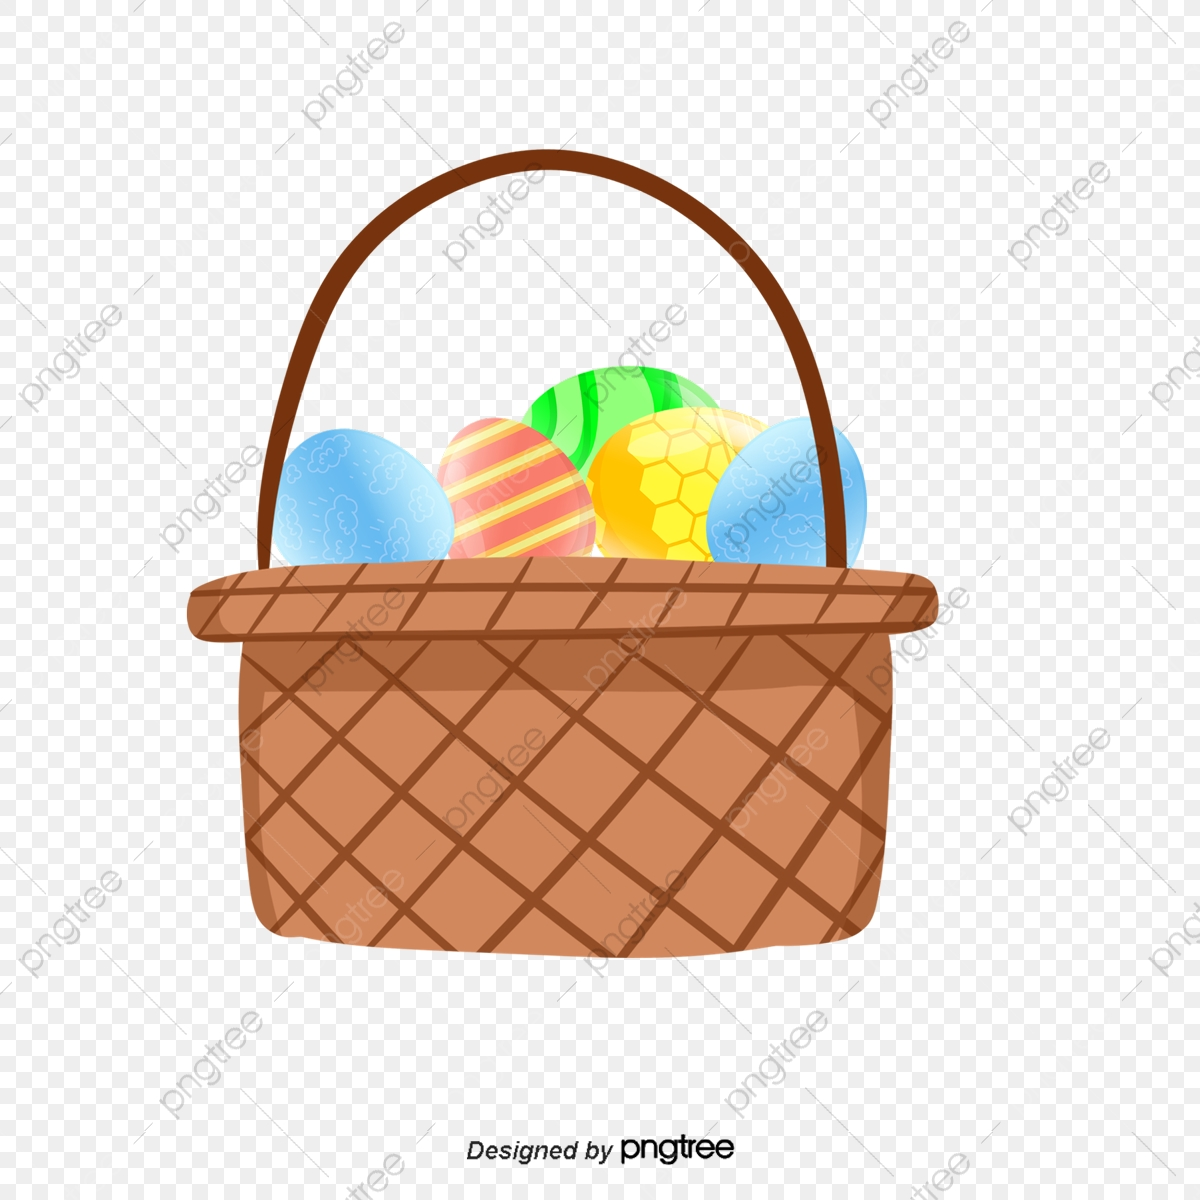 Egg Basket, Egg Clipart, Eggs, Basket PNG Transparent Clipart Image.